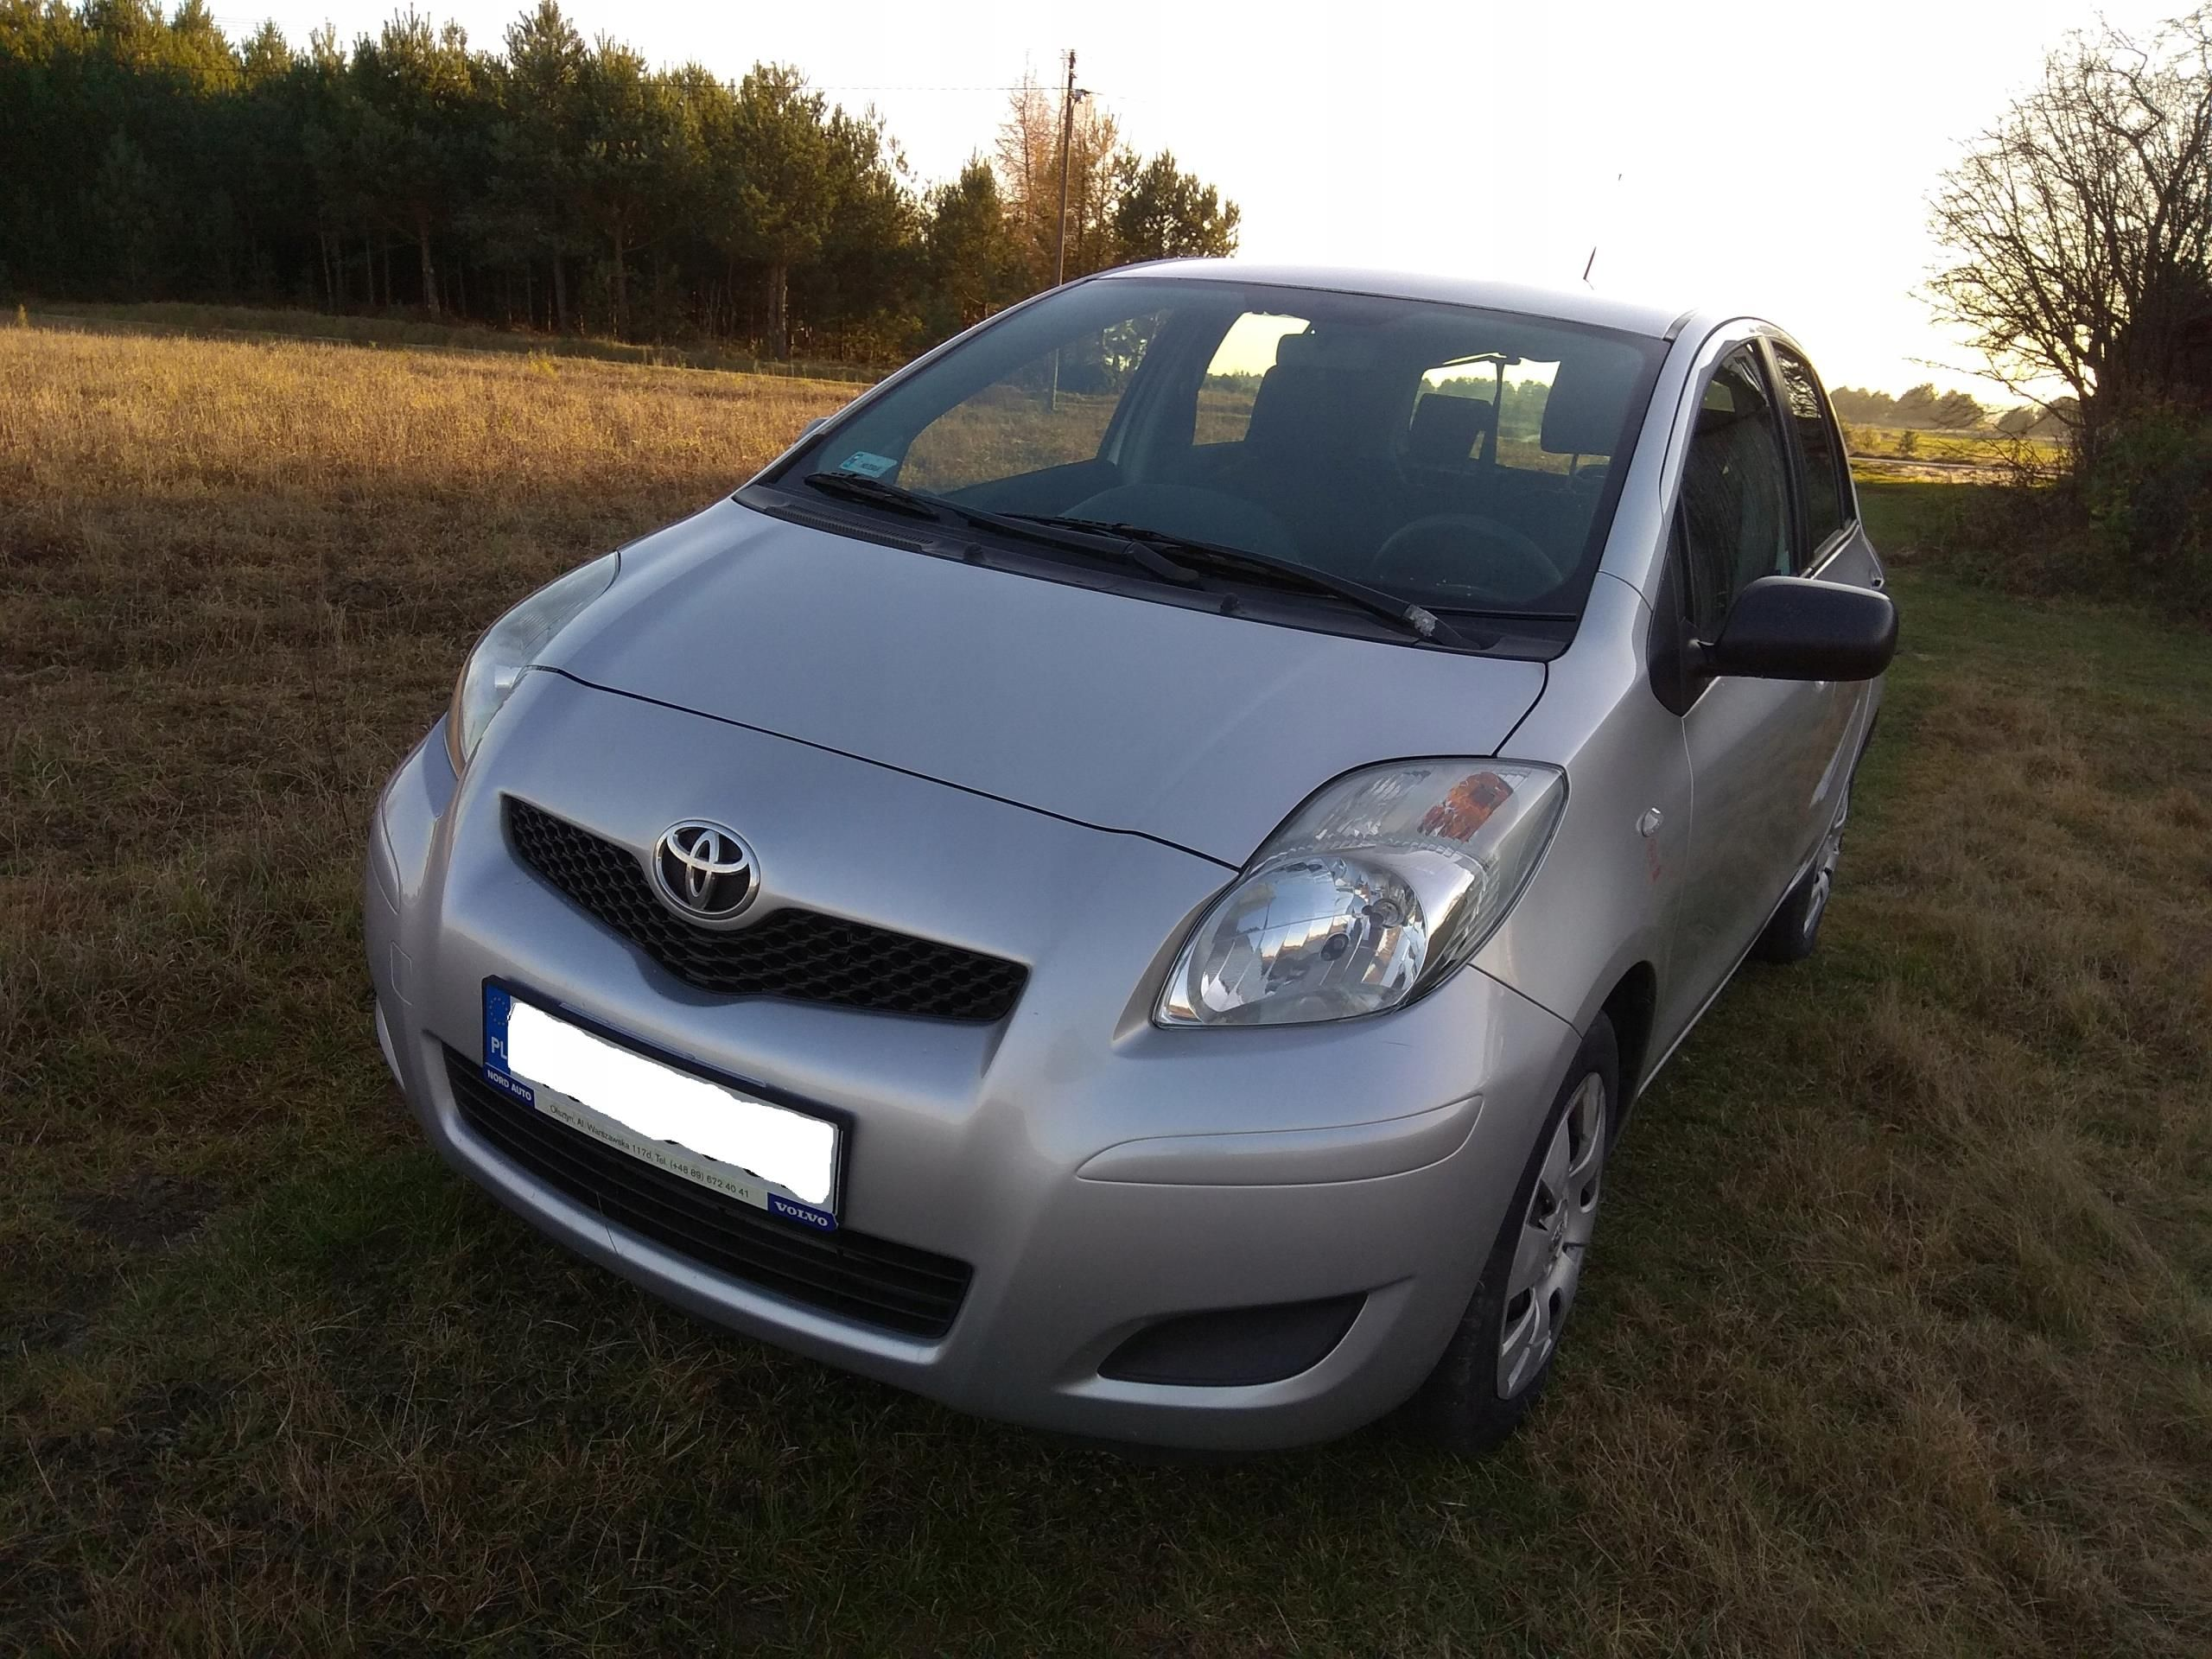 Toyota Yaris Ii 14 D4d Faktura Vat 23 Brutto Opinie I Ceny Na